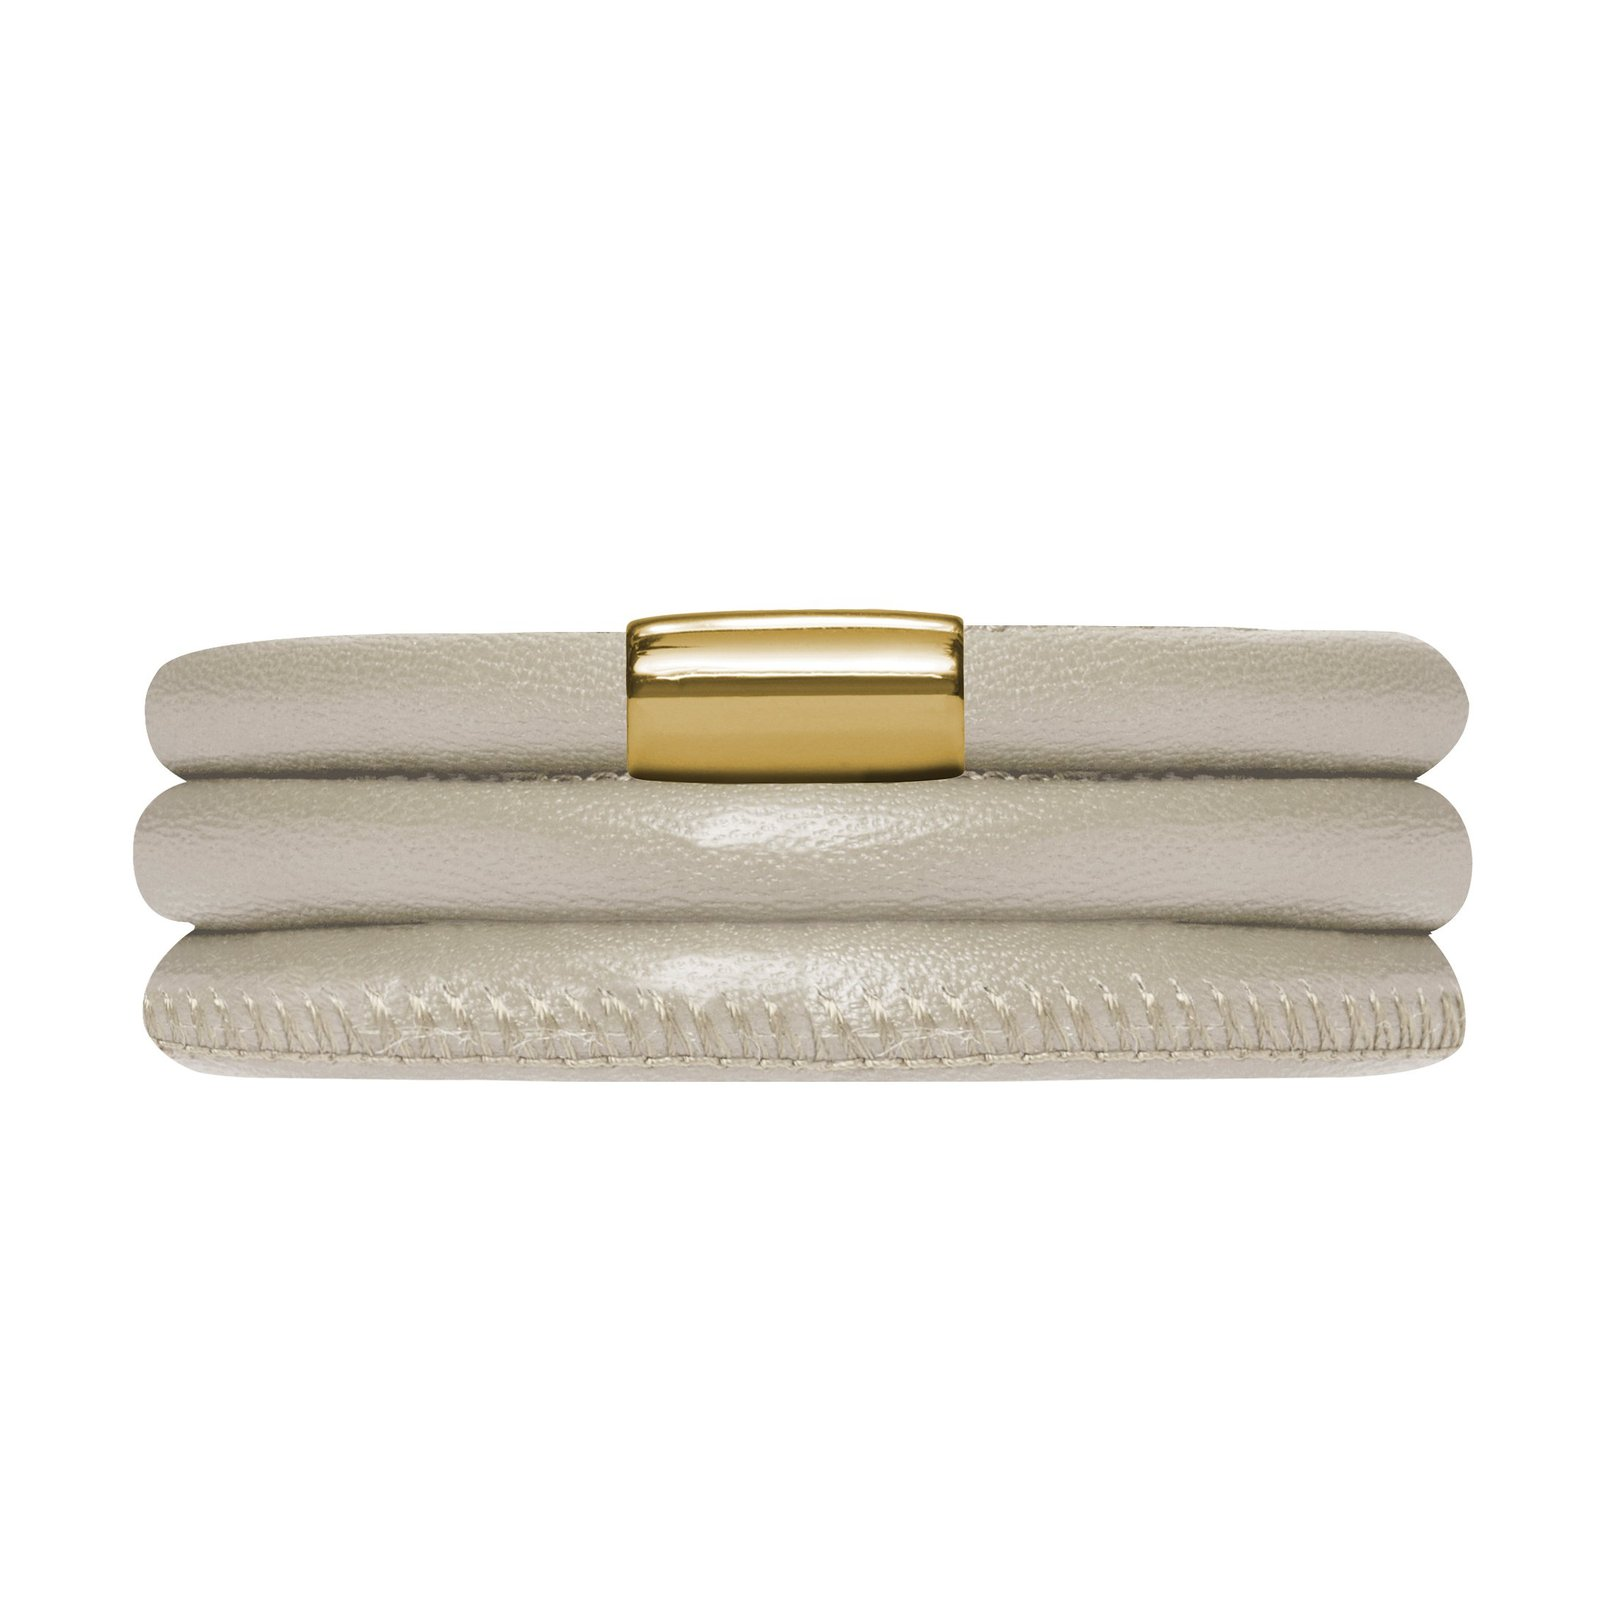 Jennifer Lopez Genuine Leather Bracelet in Creme Metallic Triple with Gold Plate